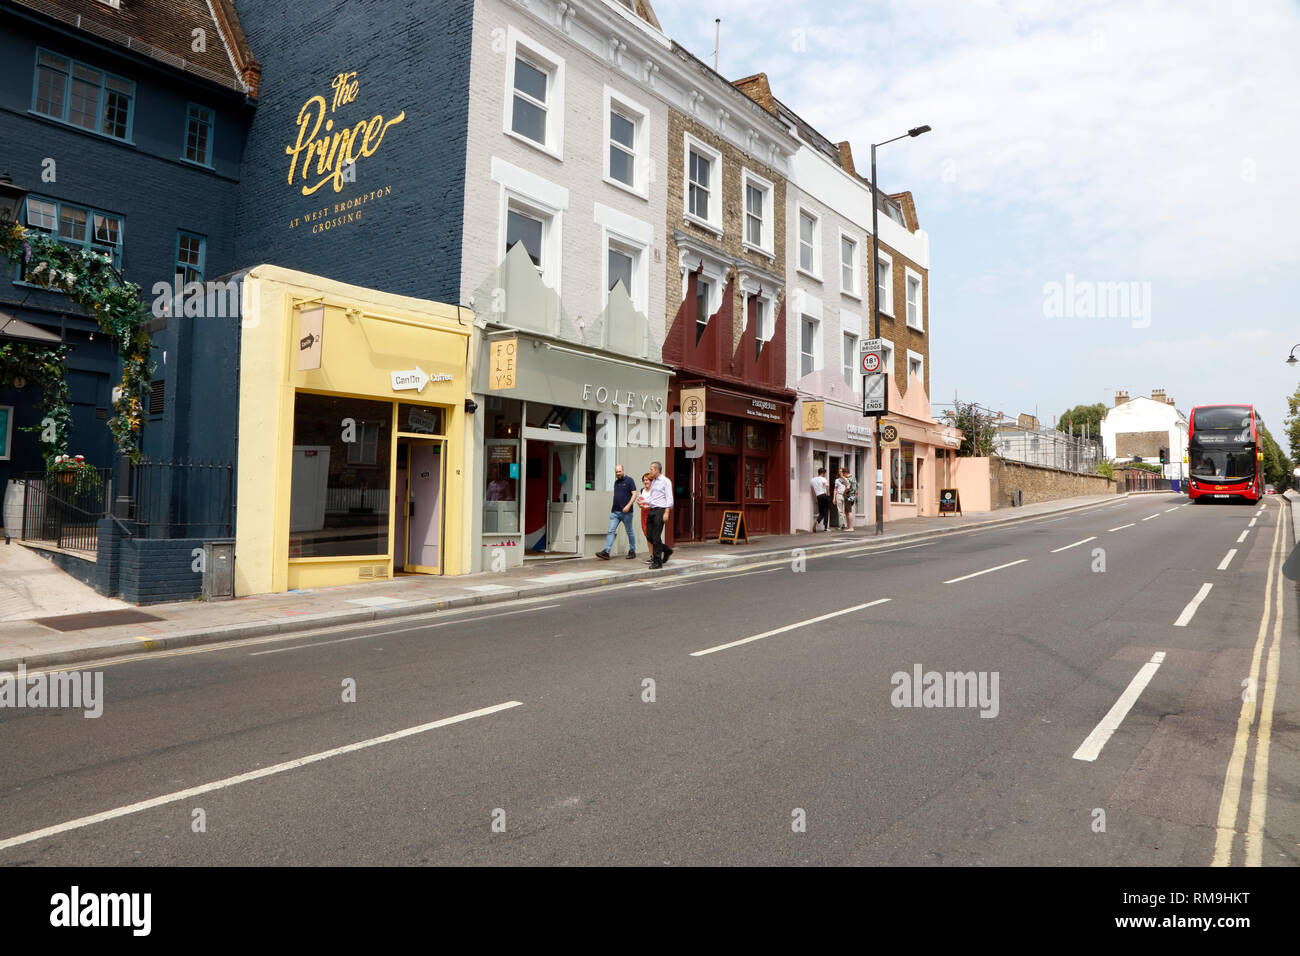 Cafes and restaurants on Lillie Road, West Brompton, London, UK - Stock Image